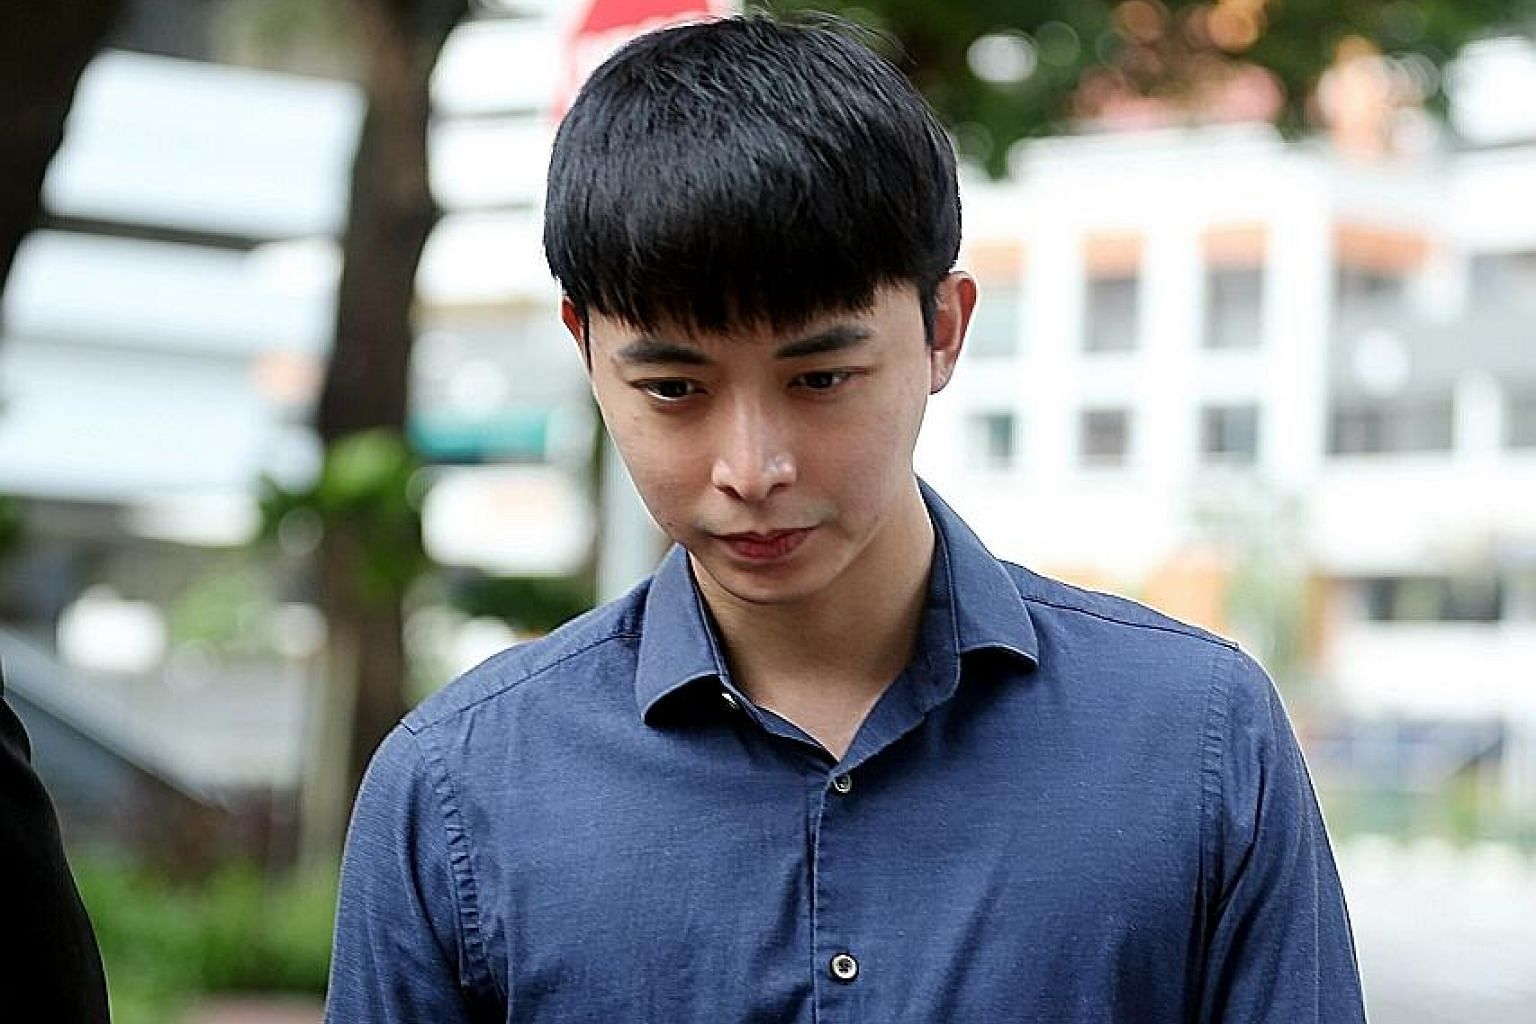 Aloysius Pang Wei Chong, a NoonTalk Media artist, was fined $2,000 and banned from driving for 18 months.